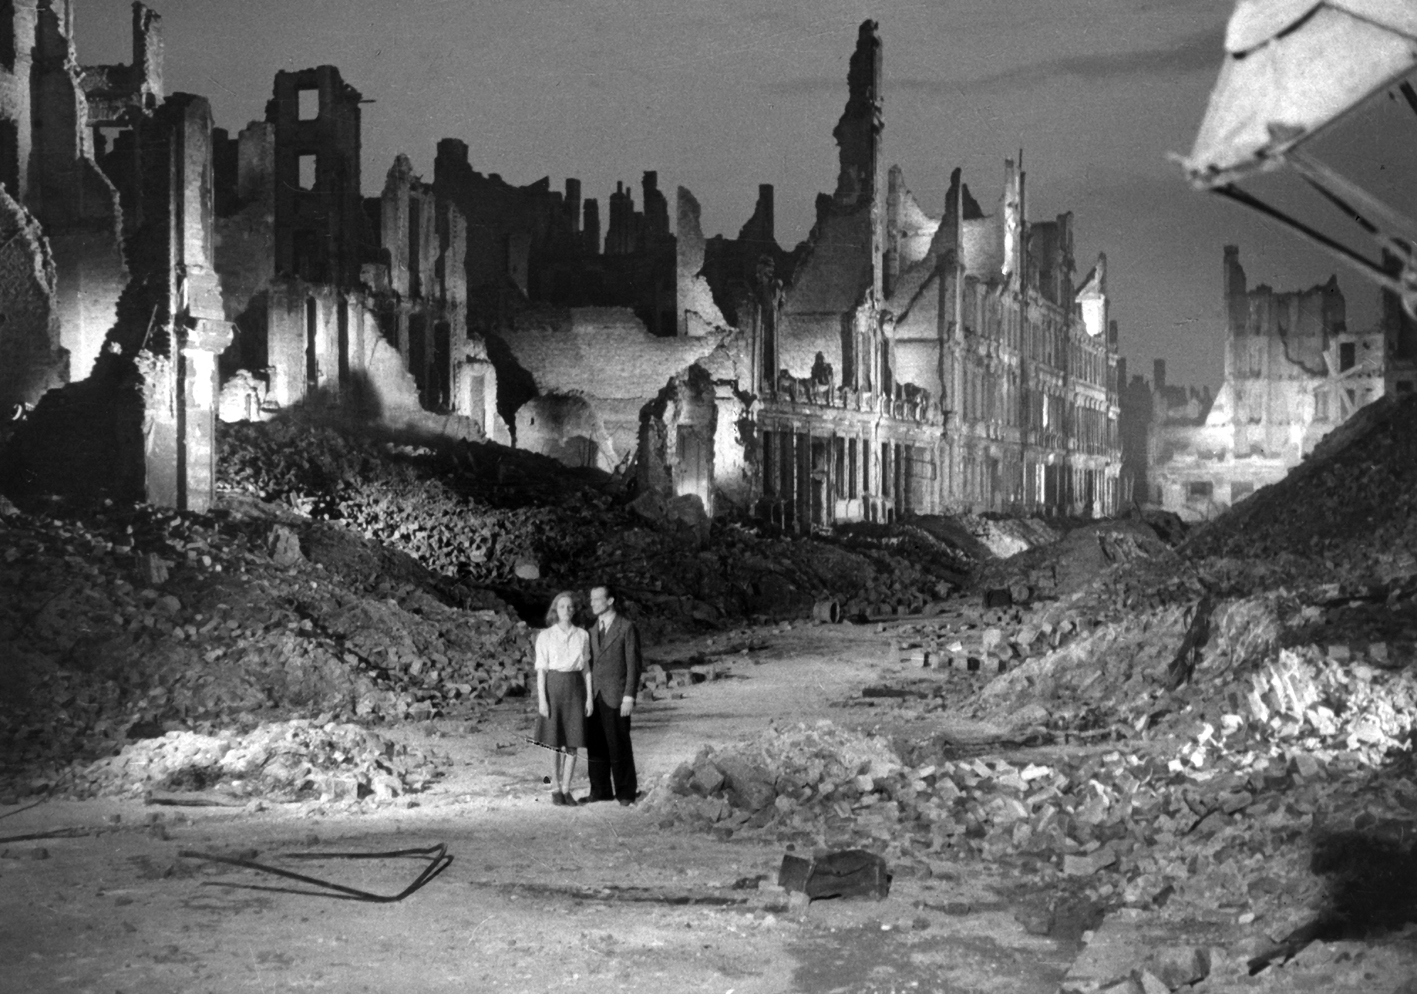 A man and woman are dwarfed by the city rubble surrounding them.